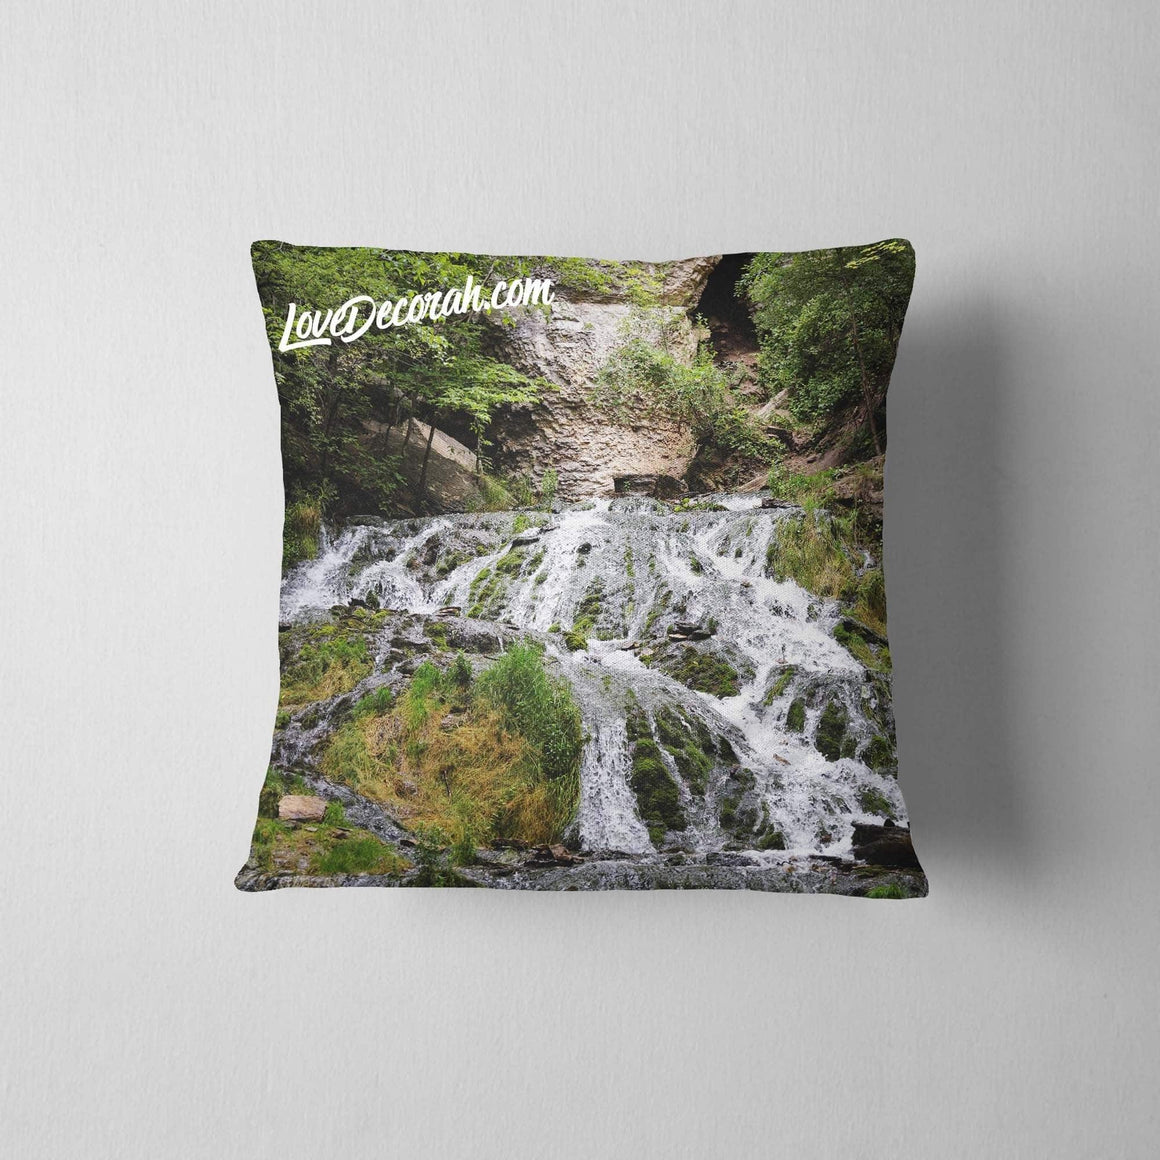 Pillow Dunnings Springs in Decorah Iowa - Kari Yearous Photography WinonaGifts KetoGifts LoveDecorah